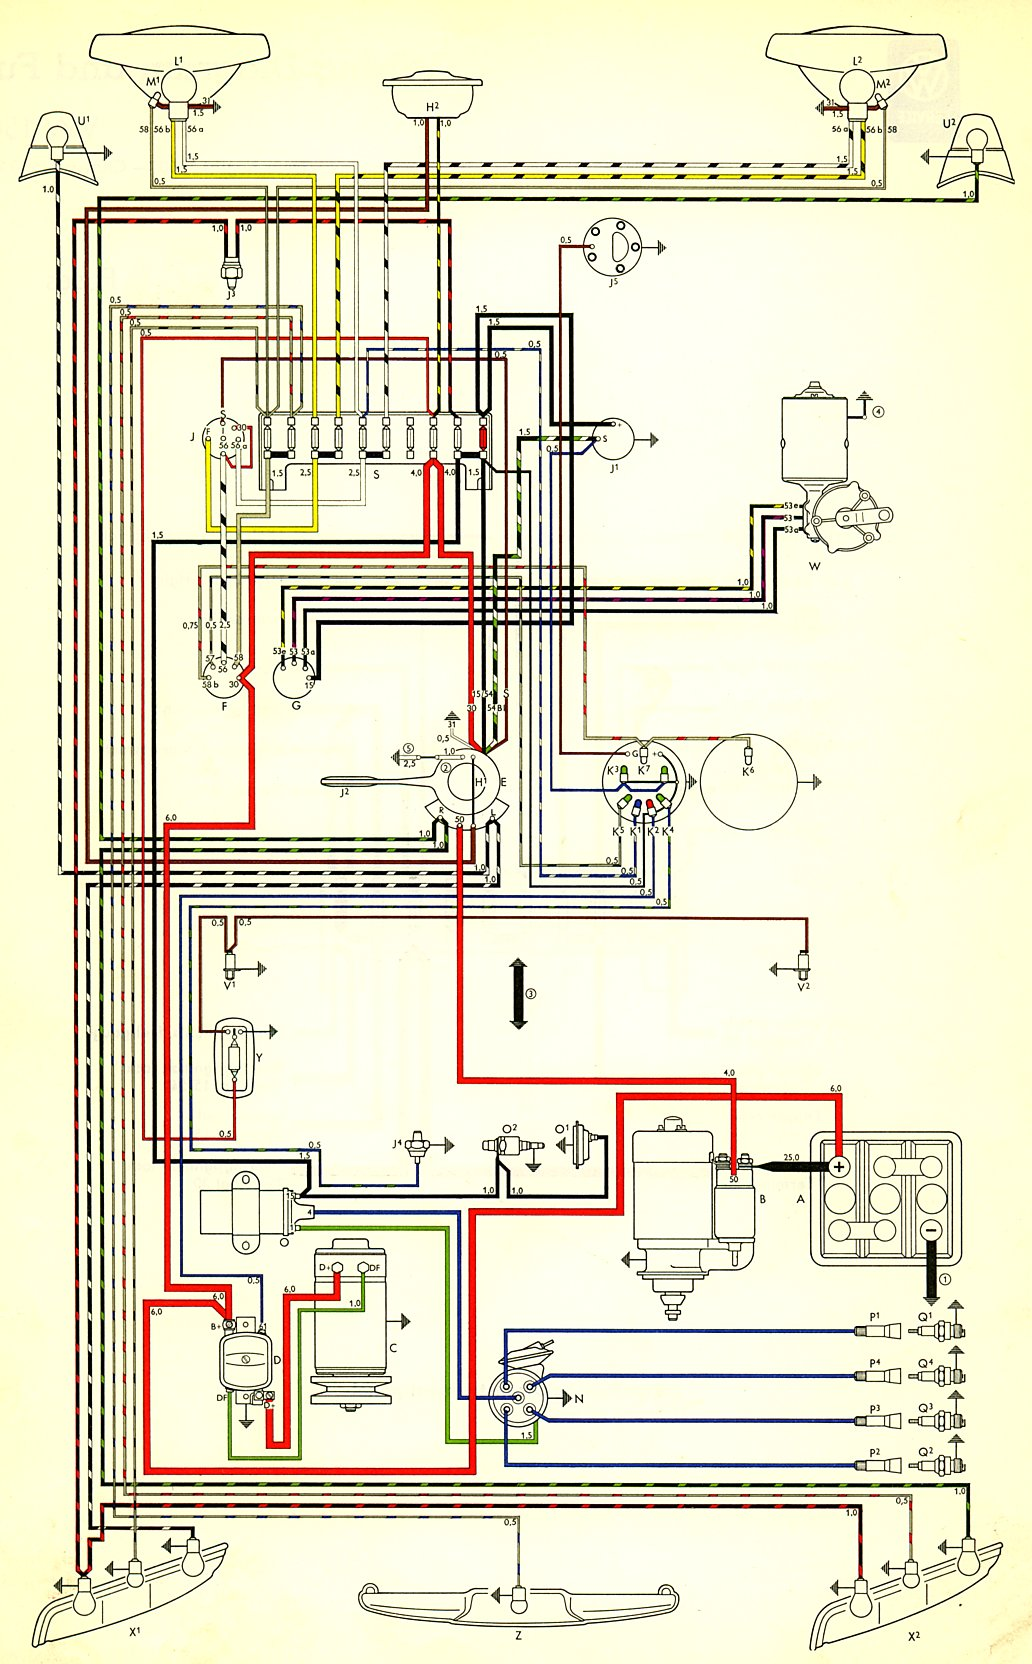 Vw Type 3 Wiring Diagram Data Schematics 72 Harness Thesamba Com Diagrams Rh 1969 Bus